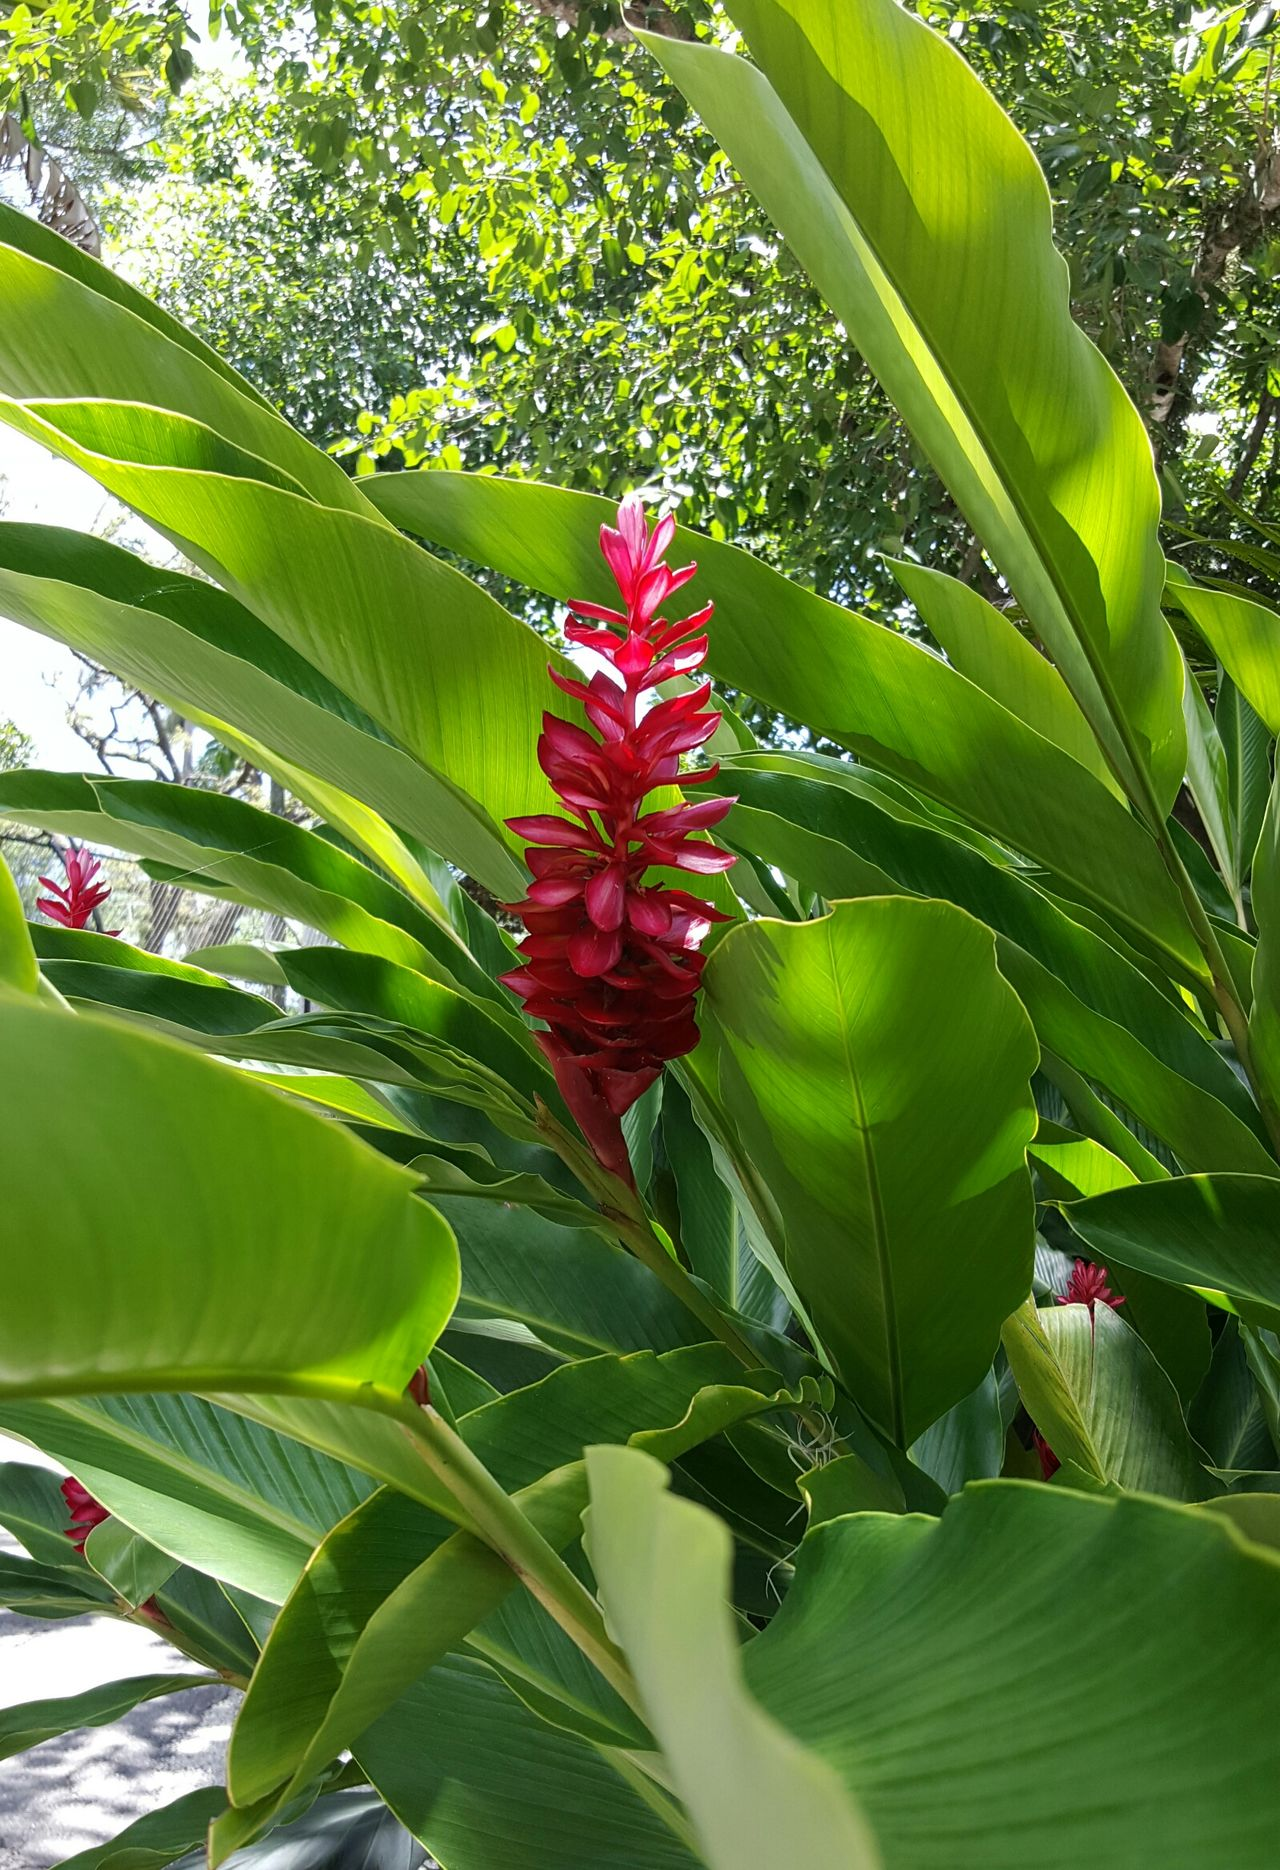 Hidden Beauty (Red Ginger) Nature Beautiful Flower Wonderful Colors Outdoors Exotic Red Green Background Lush Foliage Lush Greenery Lushview Light And Shadow Light Reflection Naples💙